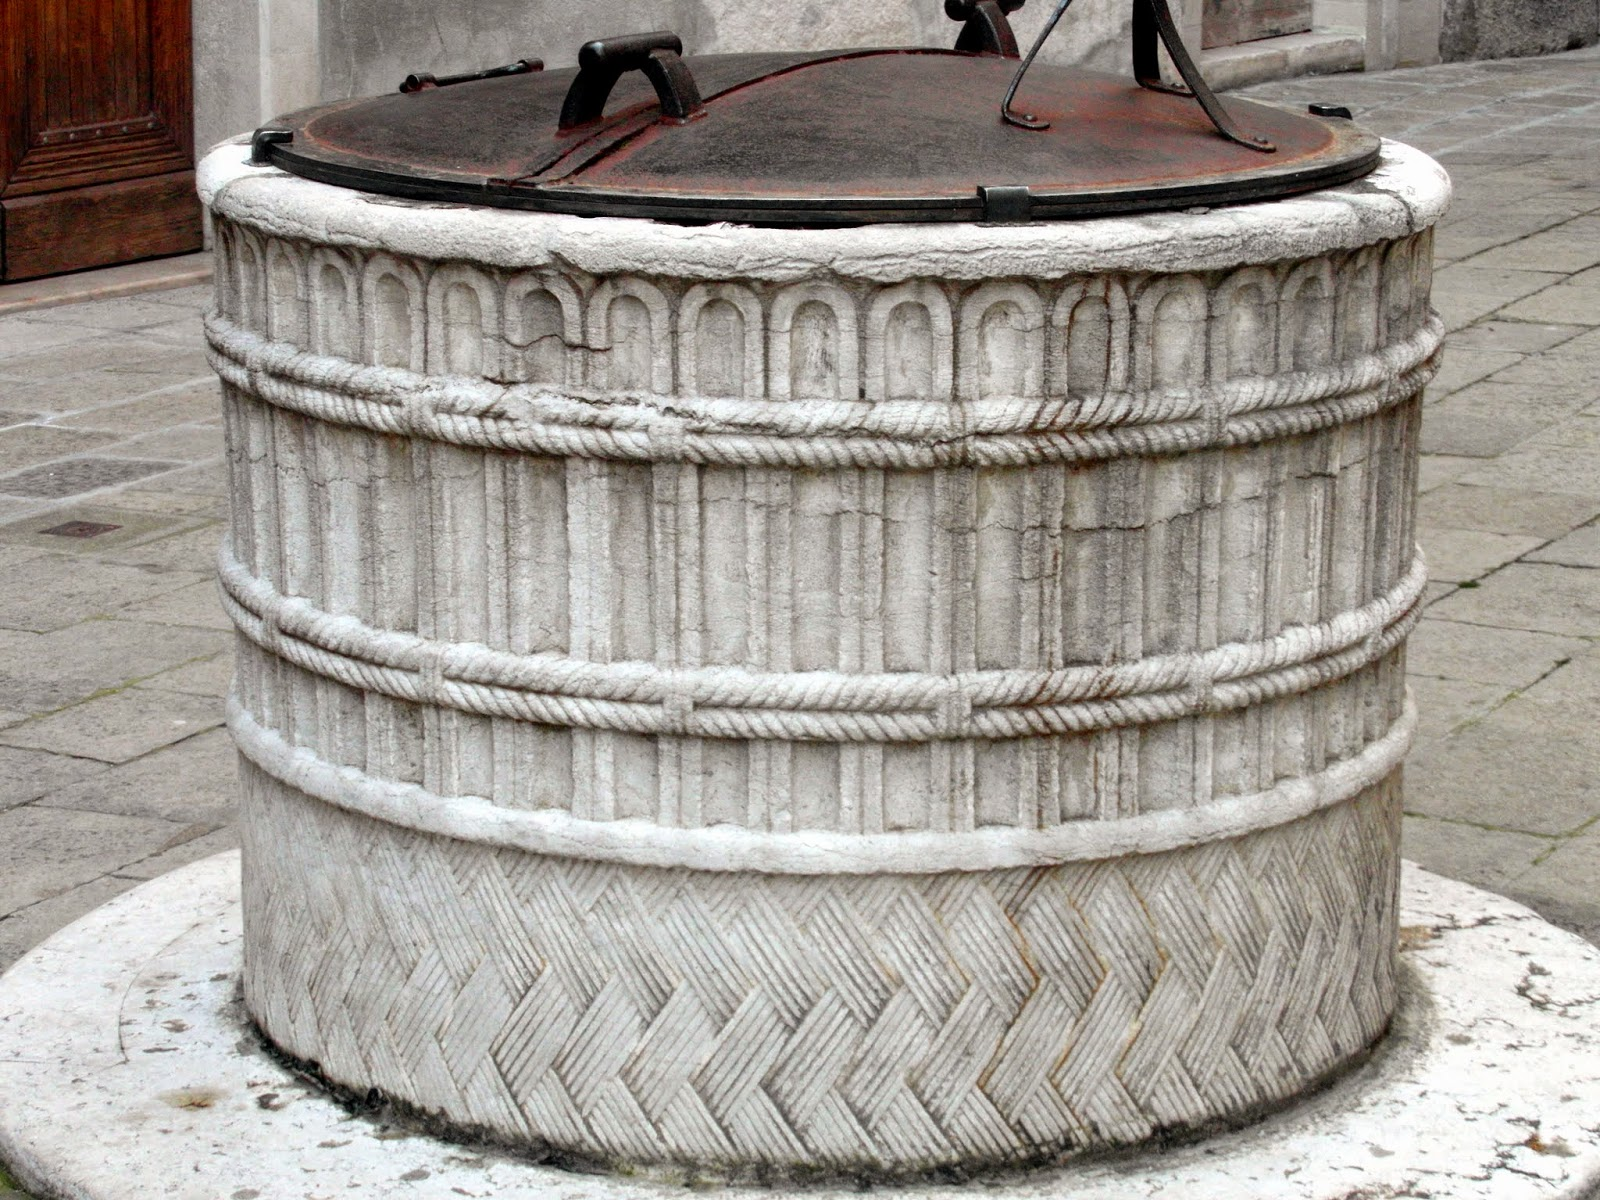 Early 15th century well-head (vera da pozzo), Corte Gregolina, Venice. A rare example of a basket-weave design.